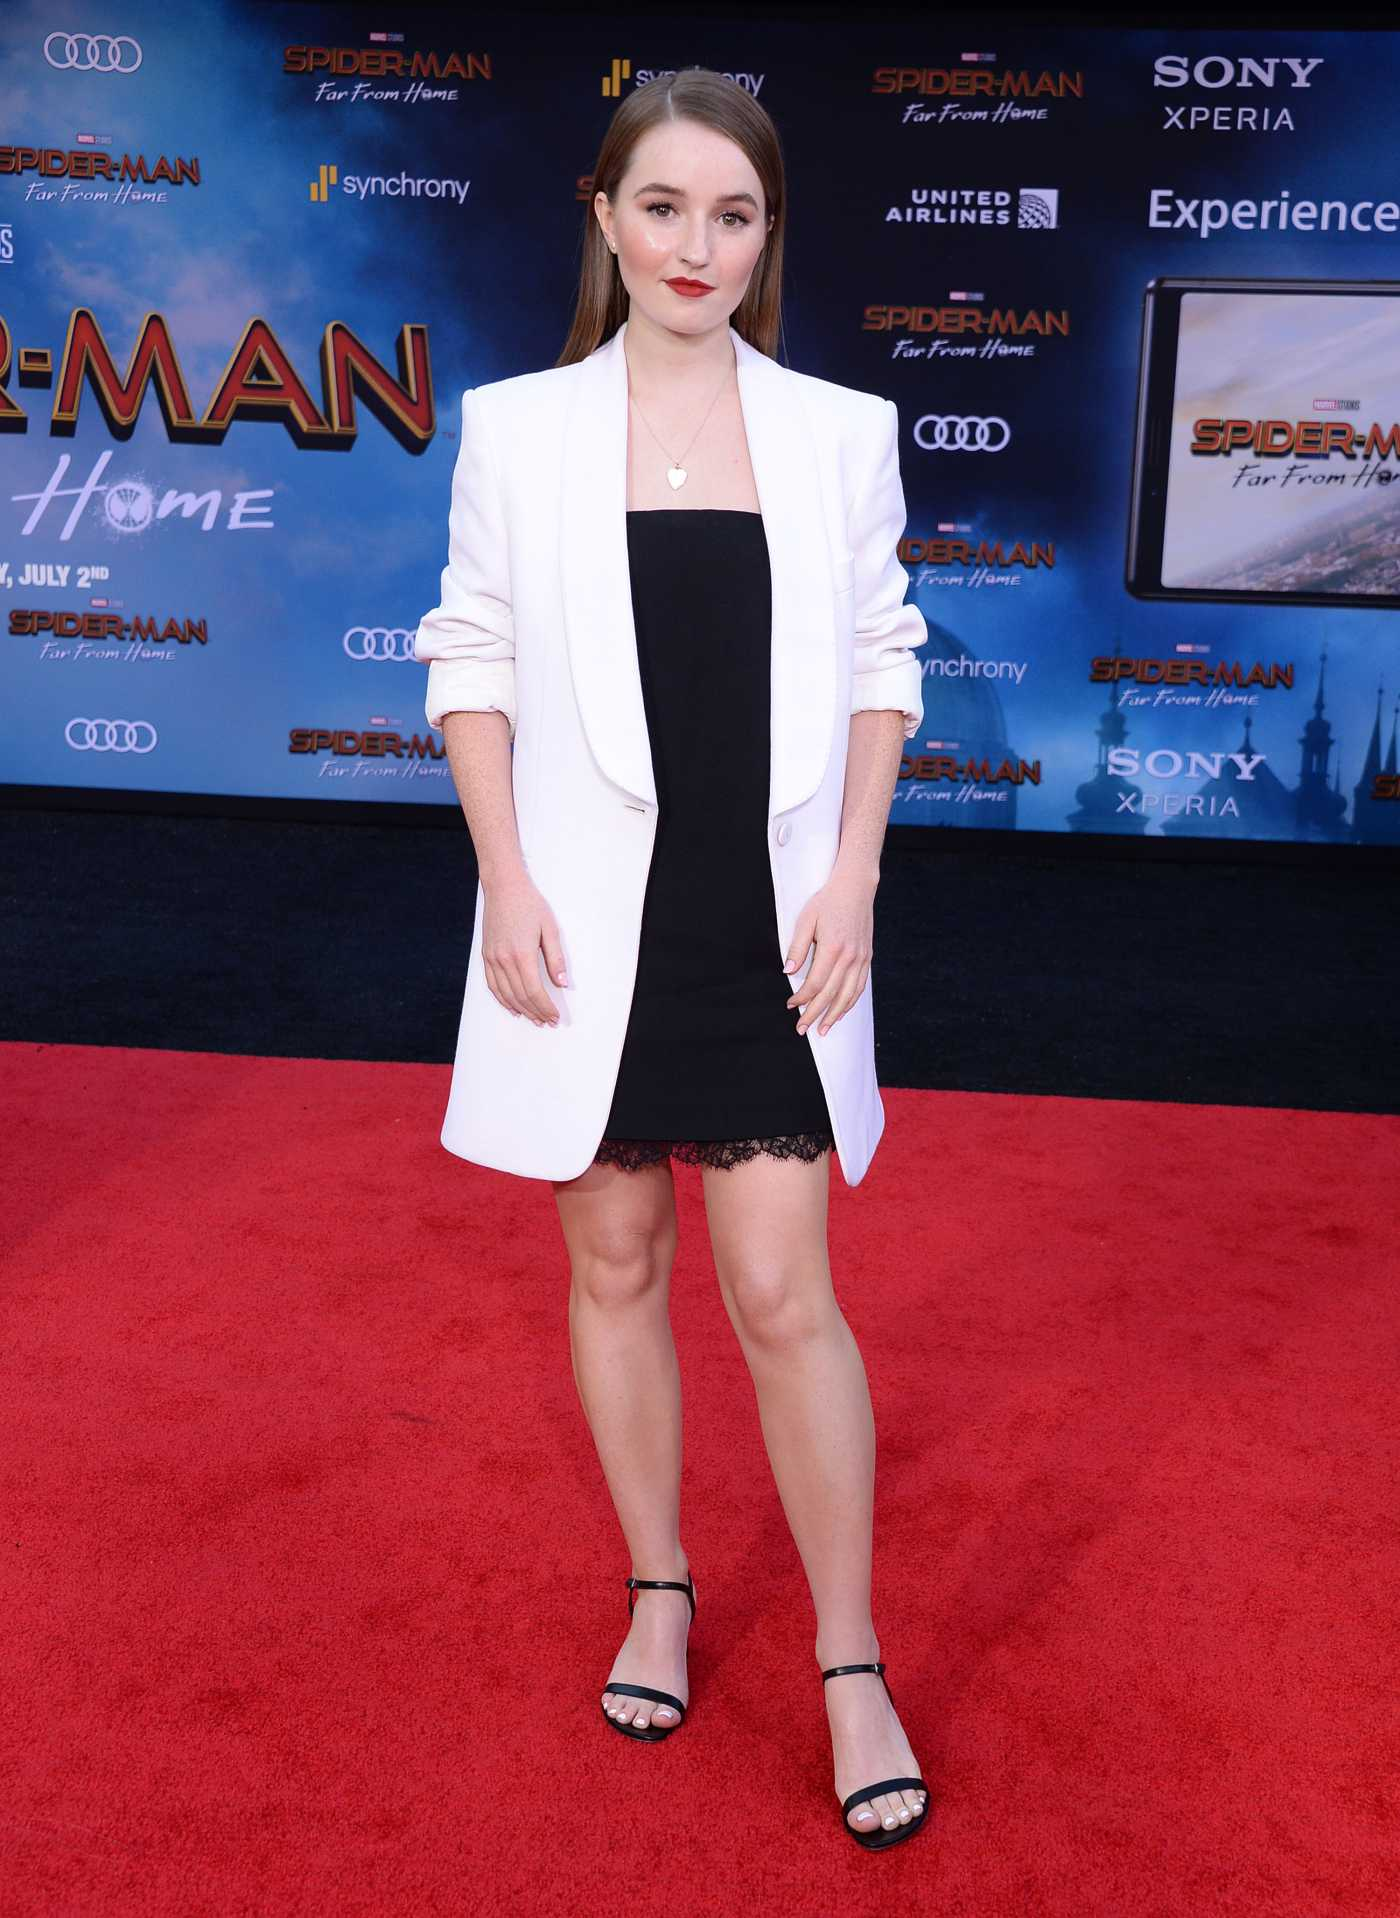 Kaitlyn Dever Attends the Spider-Man Far From Home Premiere at TCL Chinese Theatre in Hollywood 06/26/2019